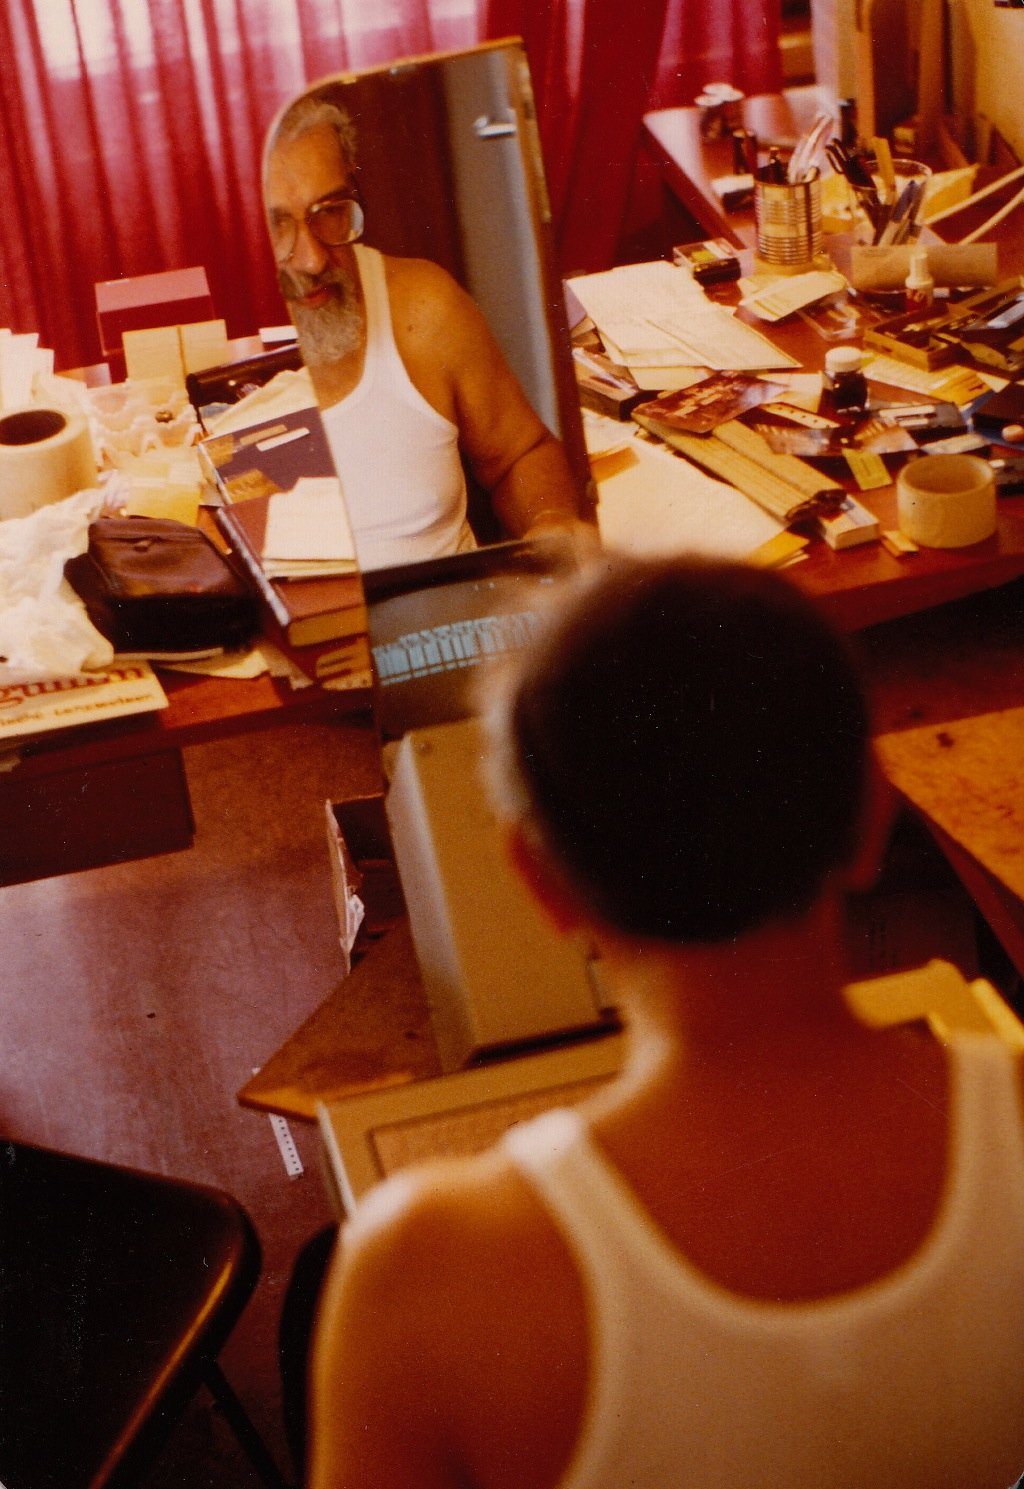 Rabbi Zalman Schachter-Shalomi reflected in a mirror, mid to late 1980s.